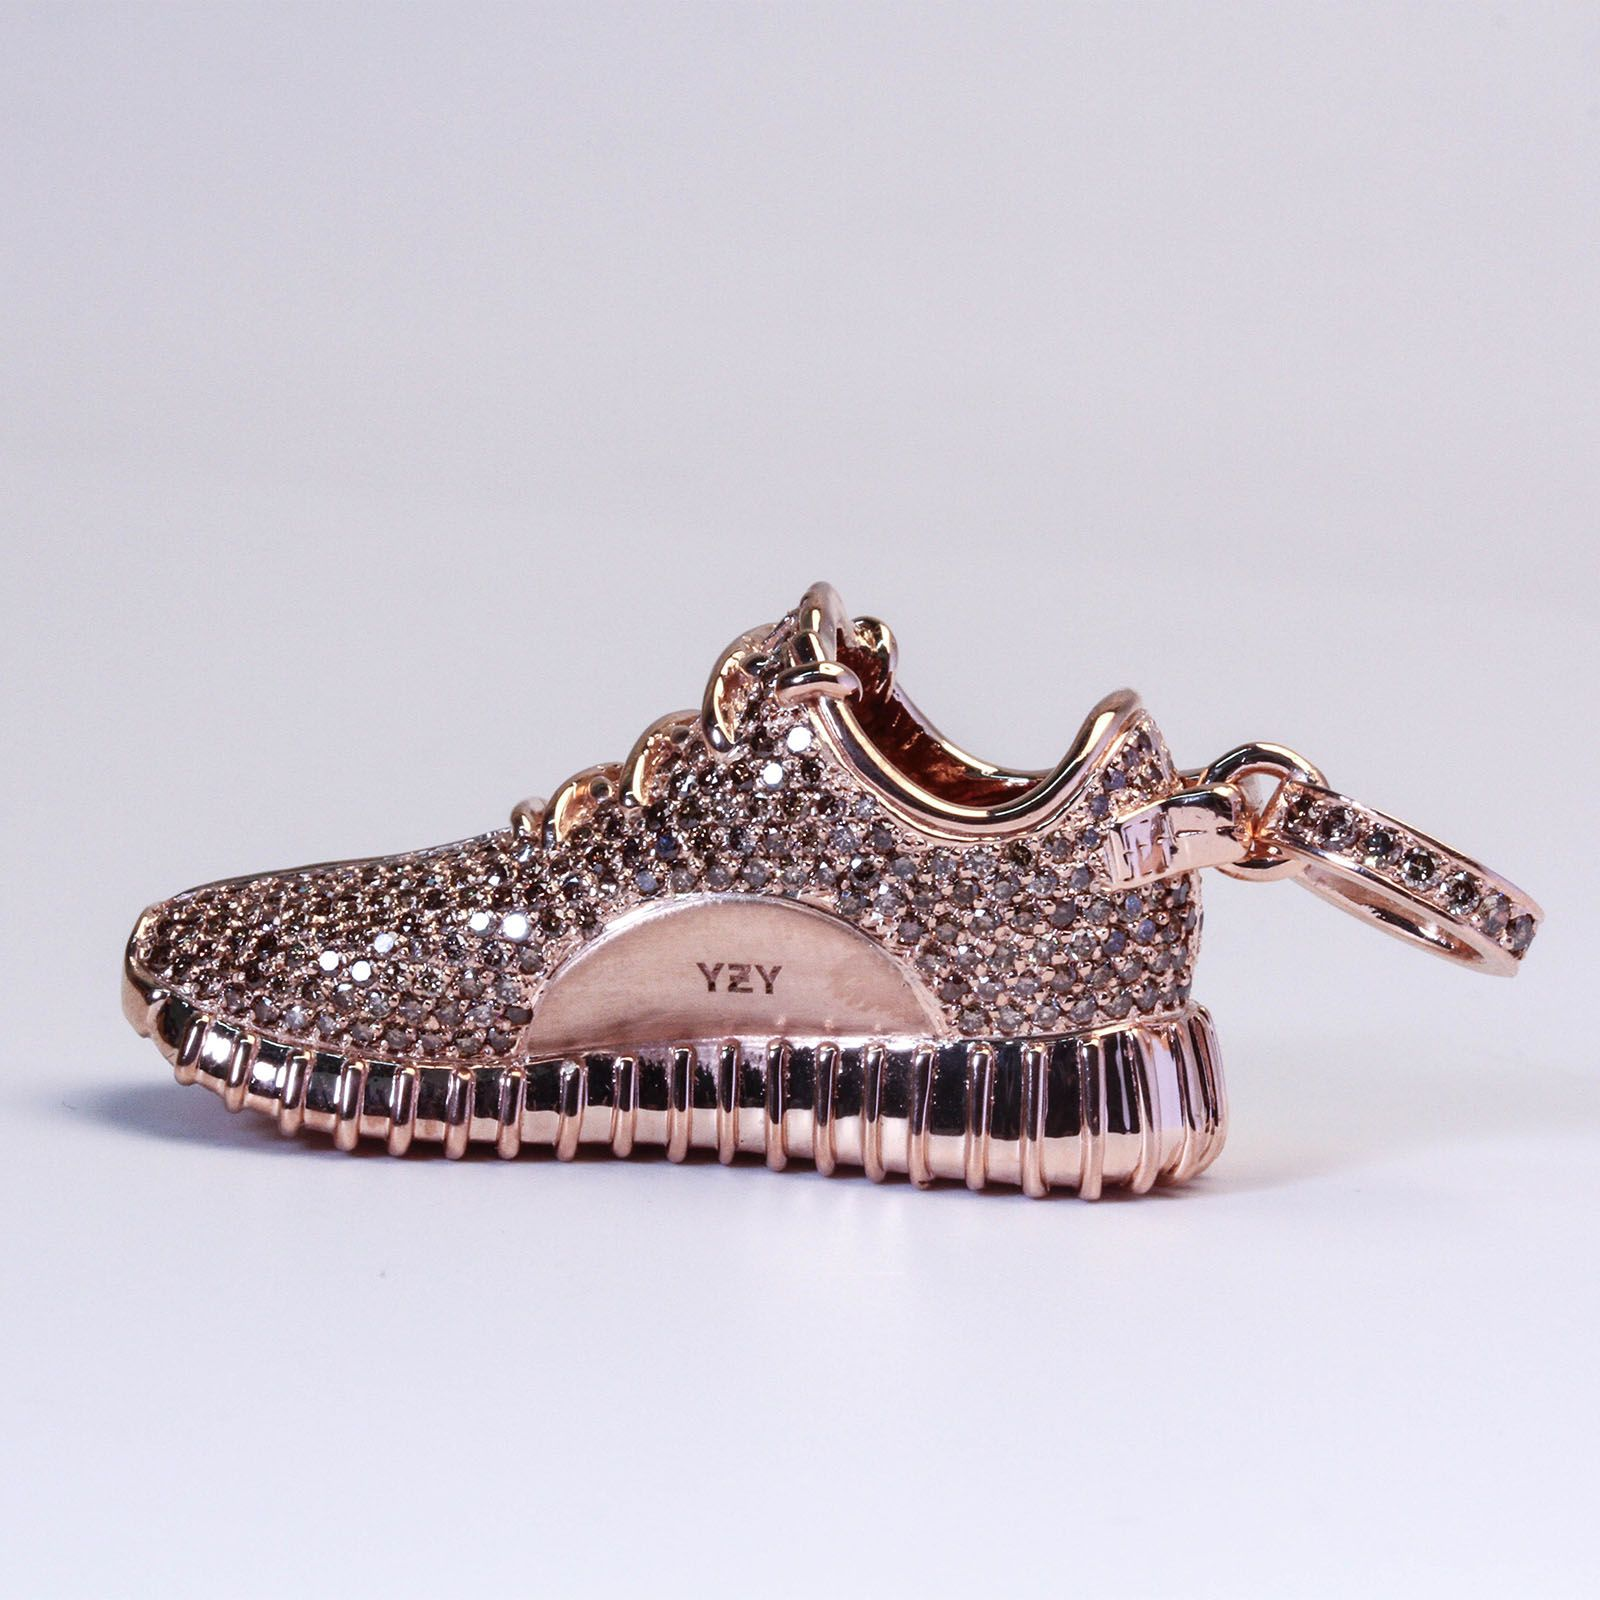 Rose Gold Adidas Yeezy Boost 350 by Ben Baller